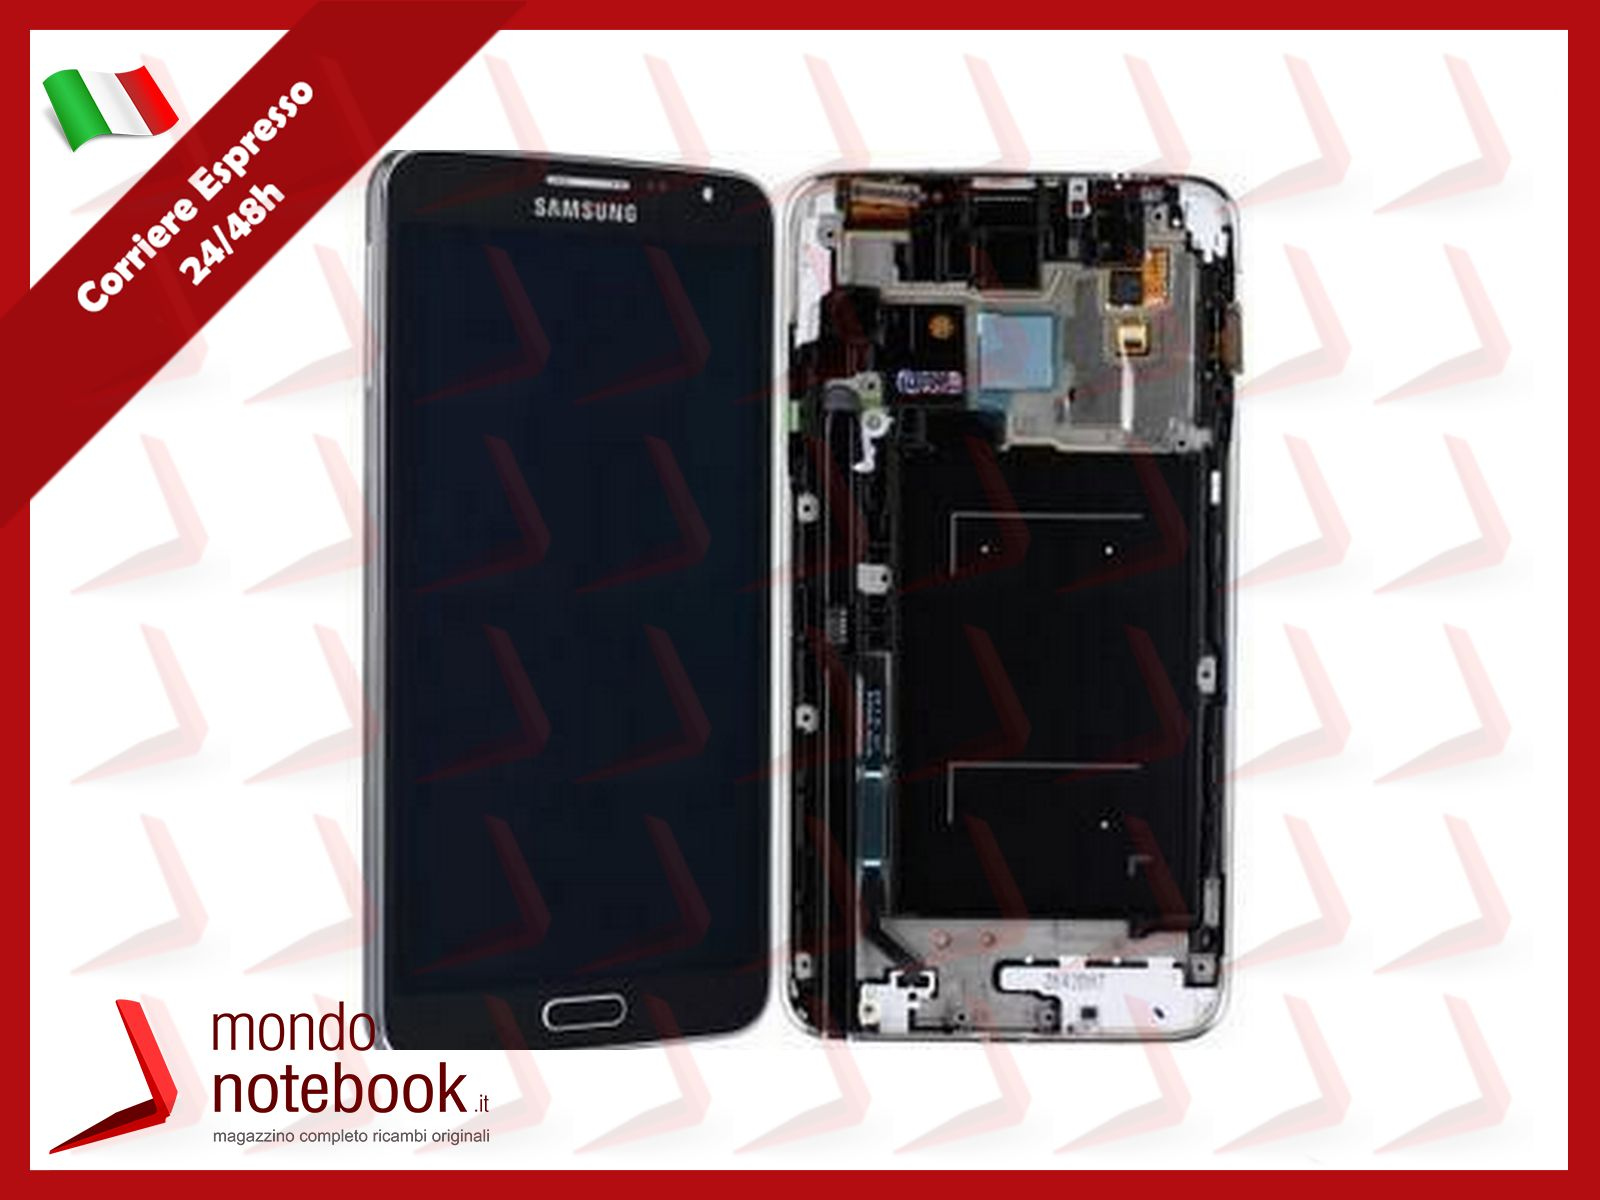 https://www.mondonotebook.it/11072/bottom-case-toshiba-satellite-c650-c655.jpg